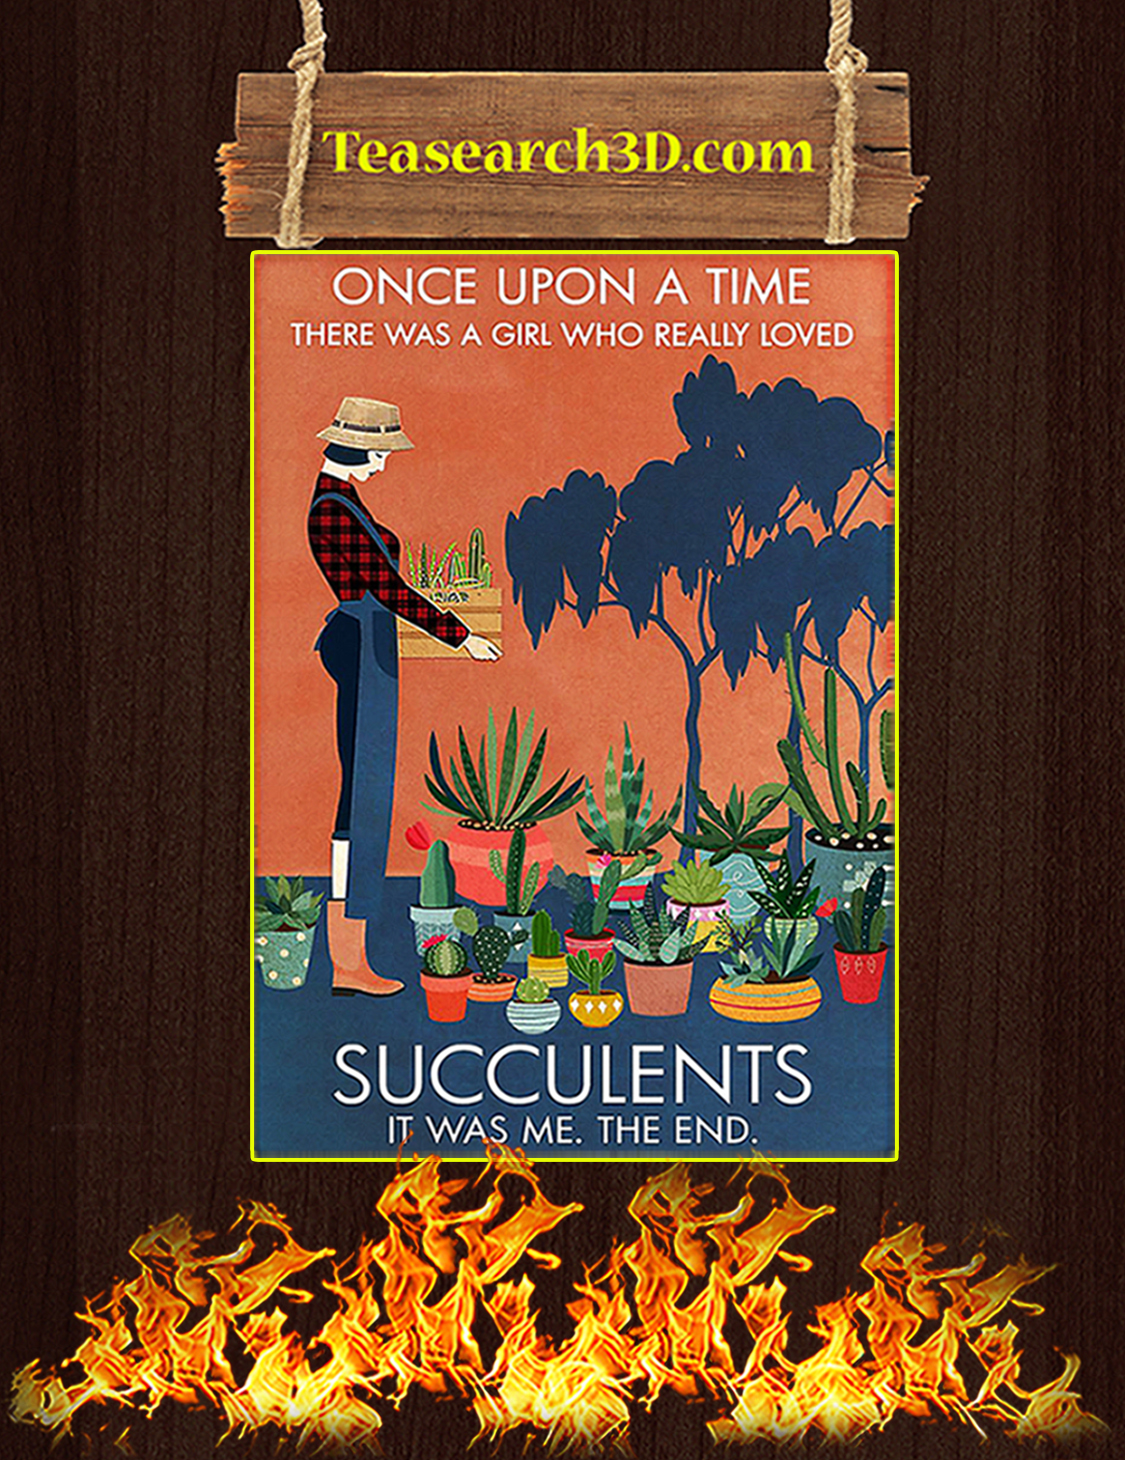 Once upon a time there was a girl loved succulents poster A3